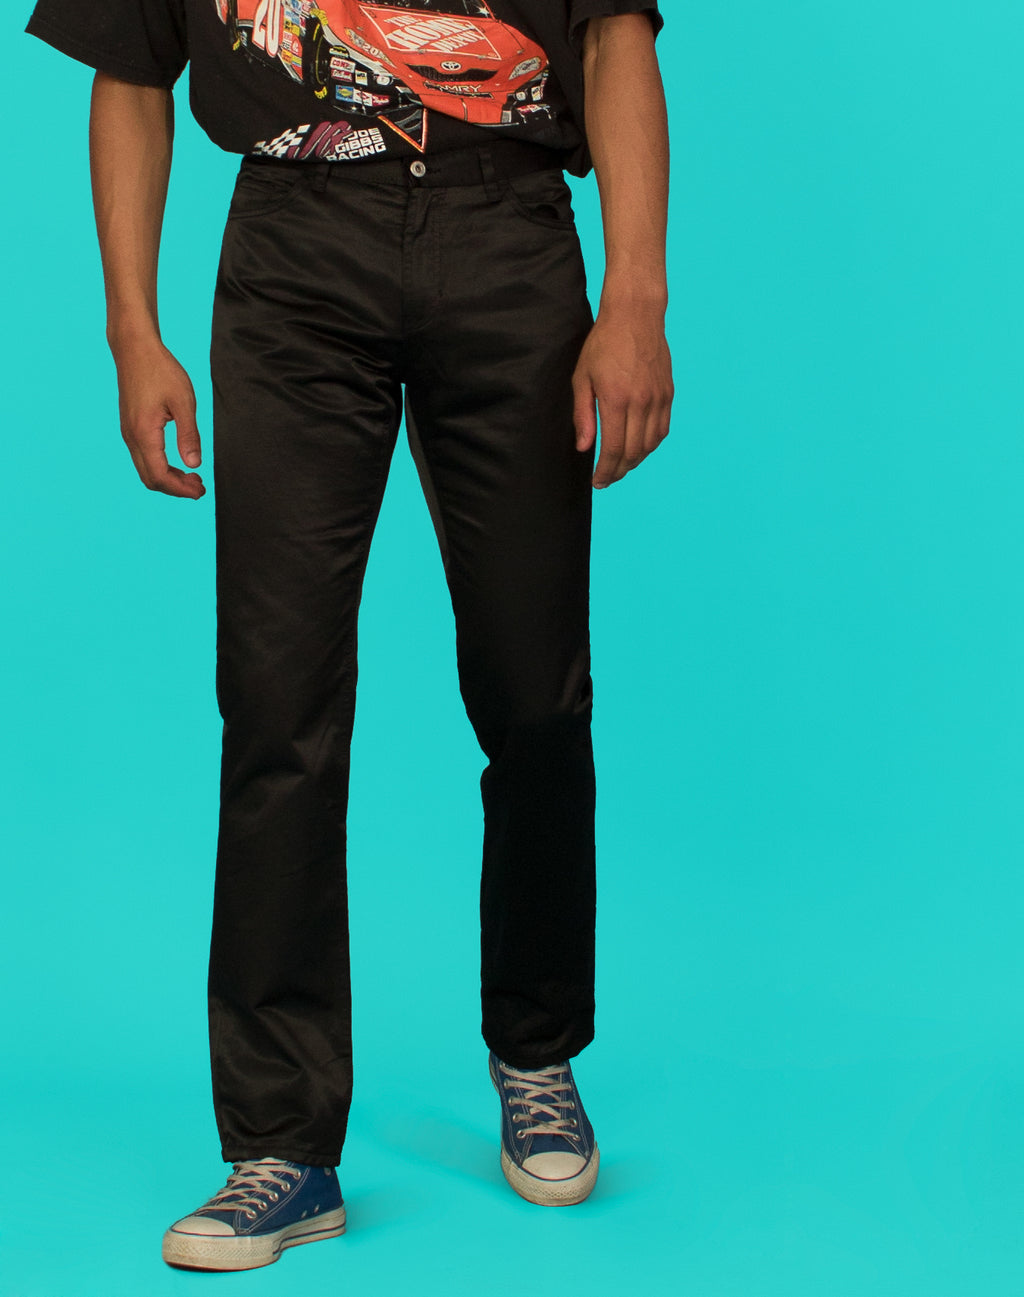 SATIN FINISH BLACK TROUSERS